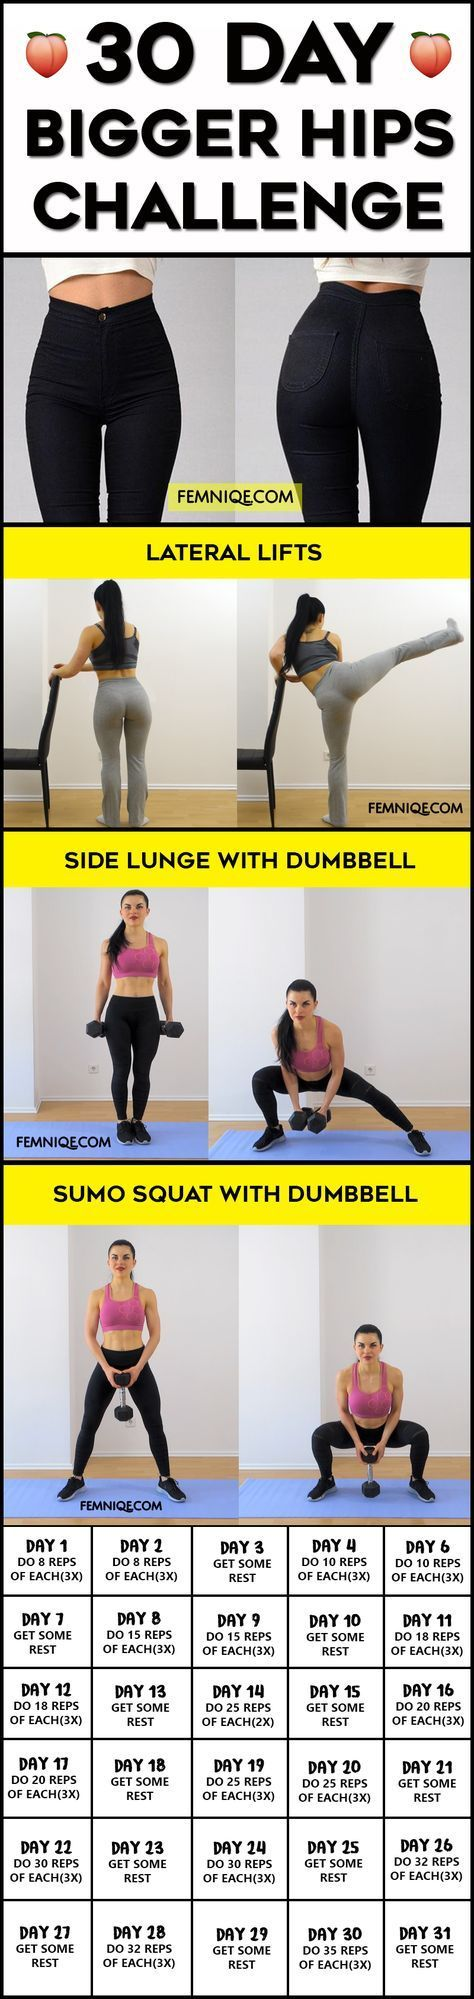 30 Day Bigger Hips Challenge (Wider & Curvier) - If you want to get bigger hips then you will love this challenge. The workouts are designed to stimulate muscle growth for you pelvic side muscles. The wider hips workout plan will sculpt bigger and curvier hips.